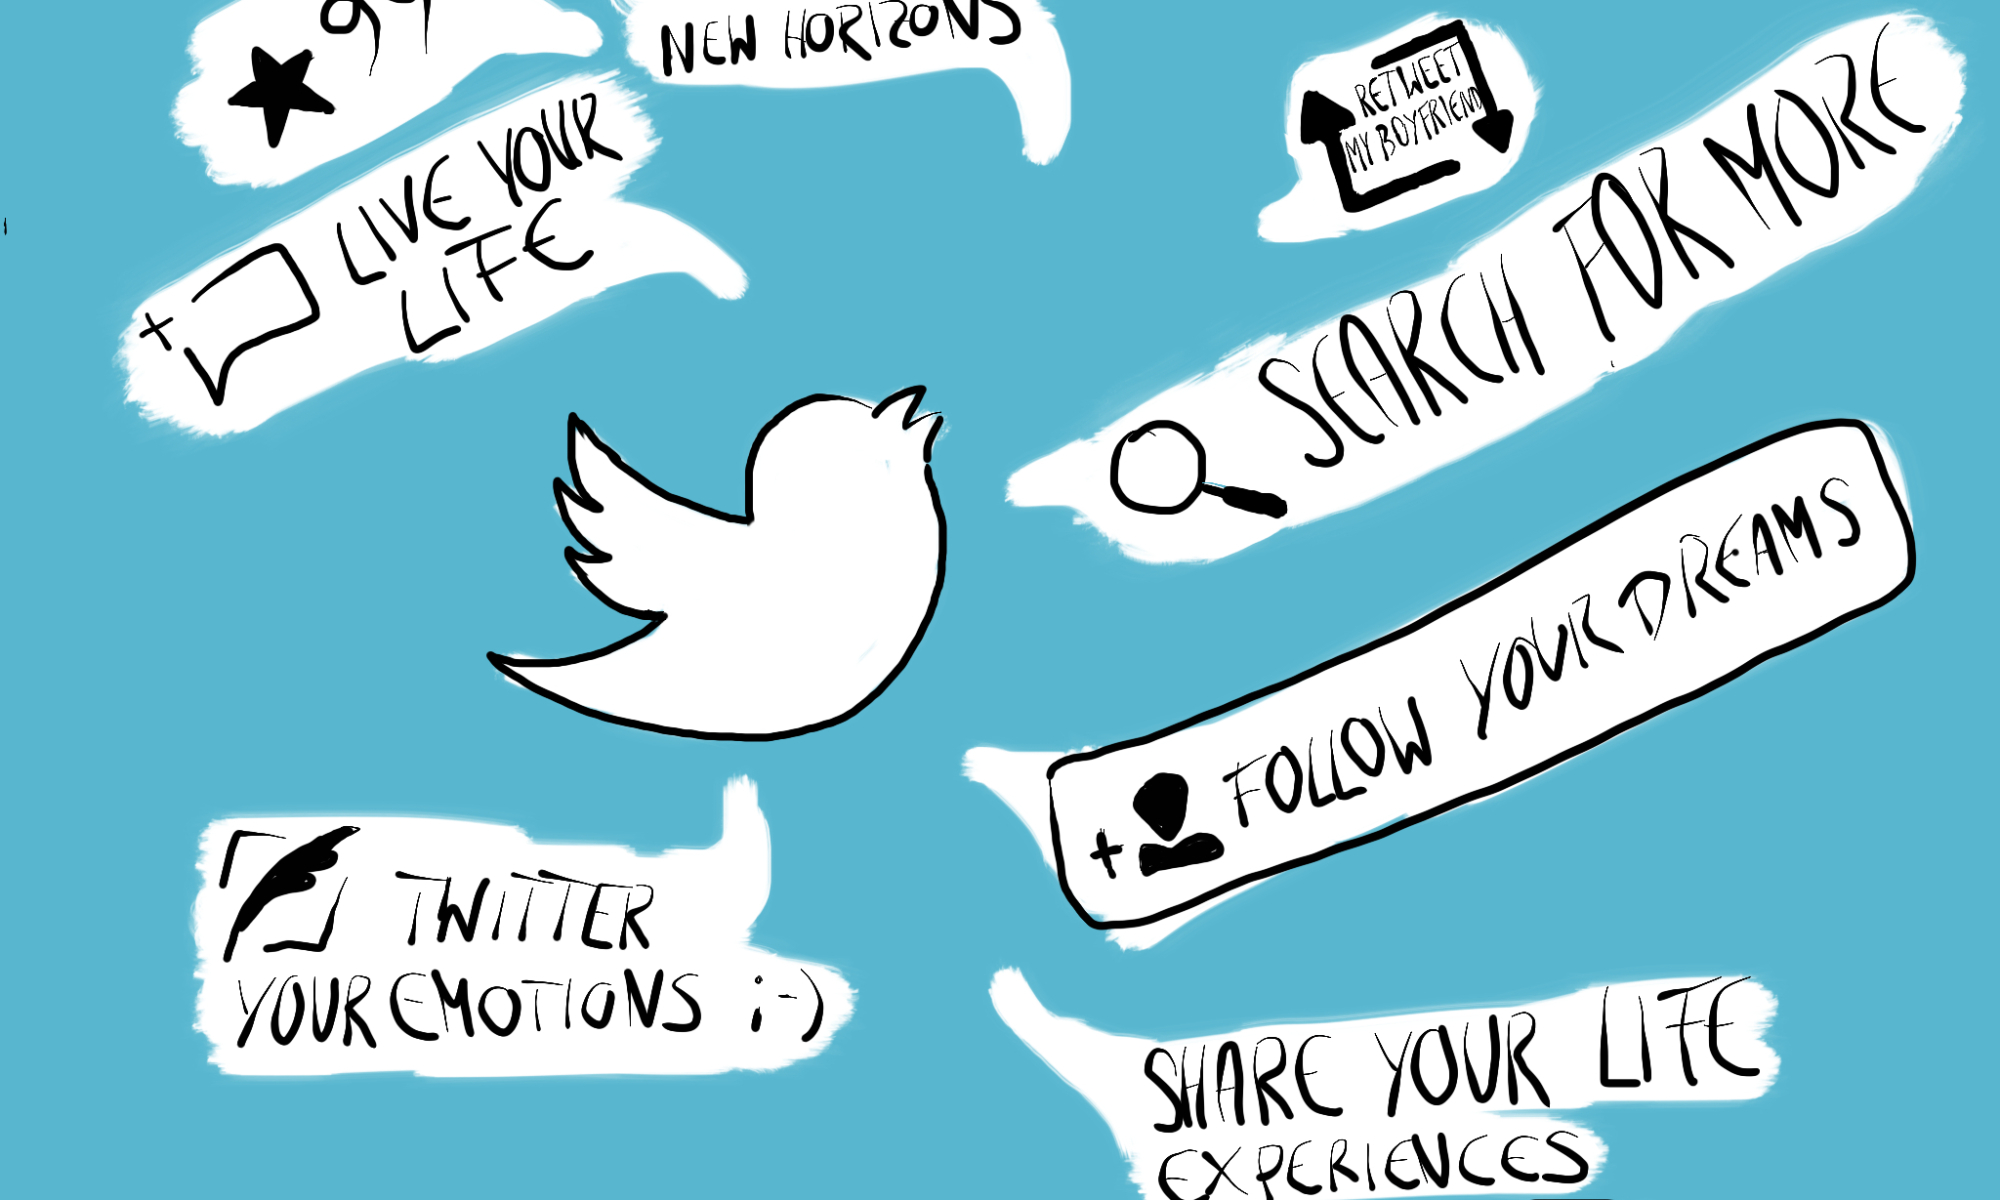 Memories clipart live life. Is like twitter you